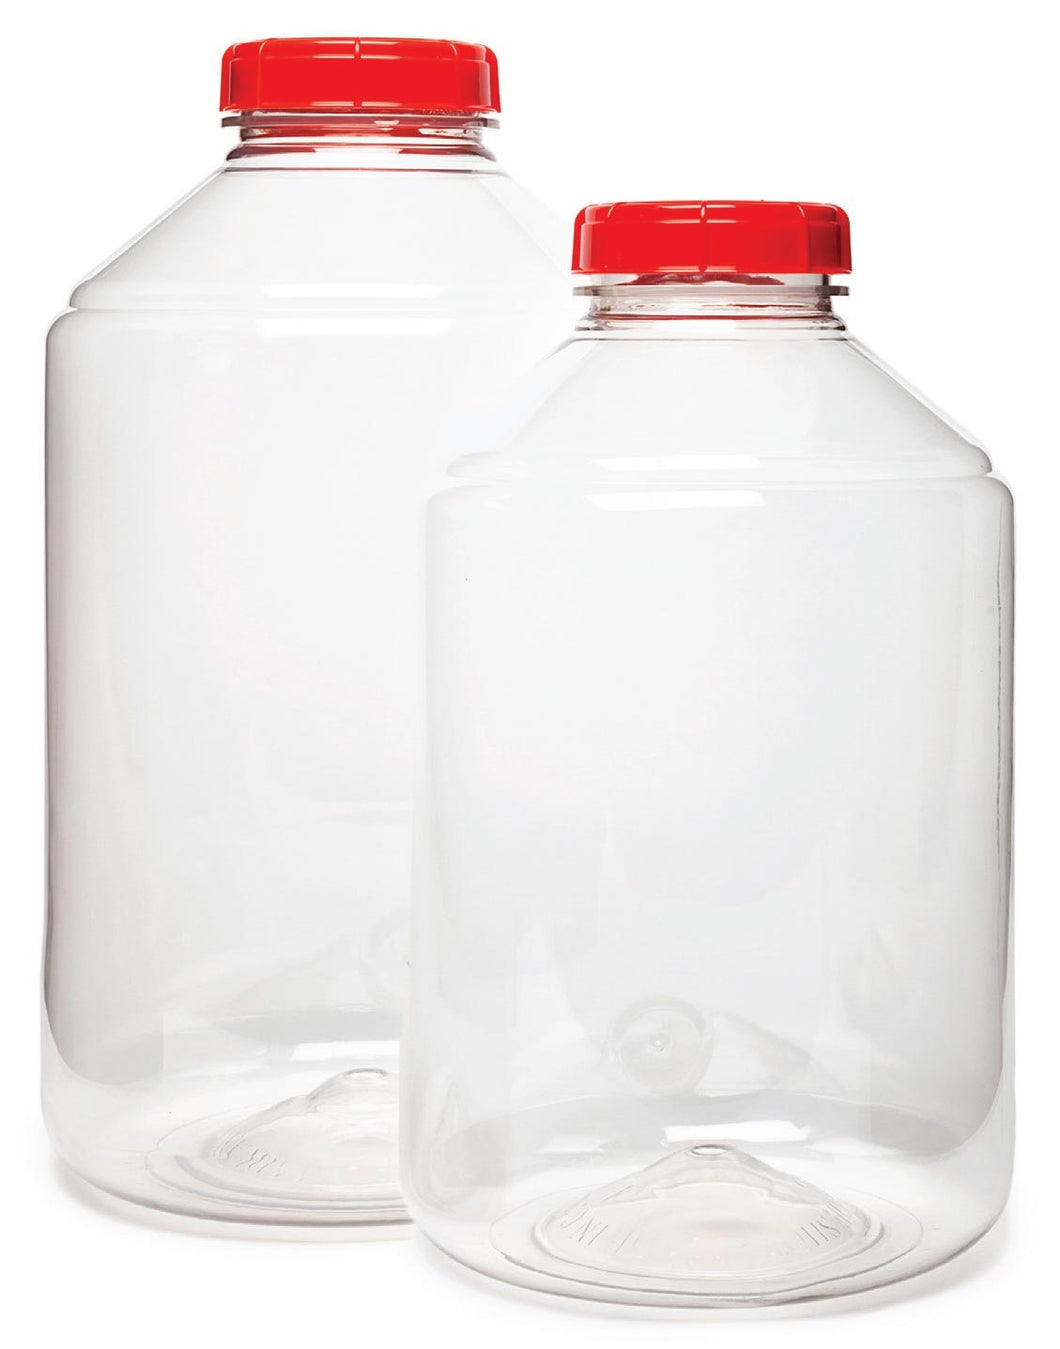 FerMonster PET Carboy - 7 Gallon